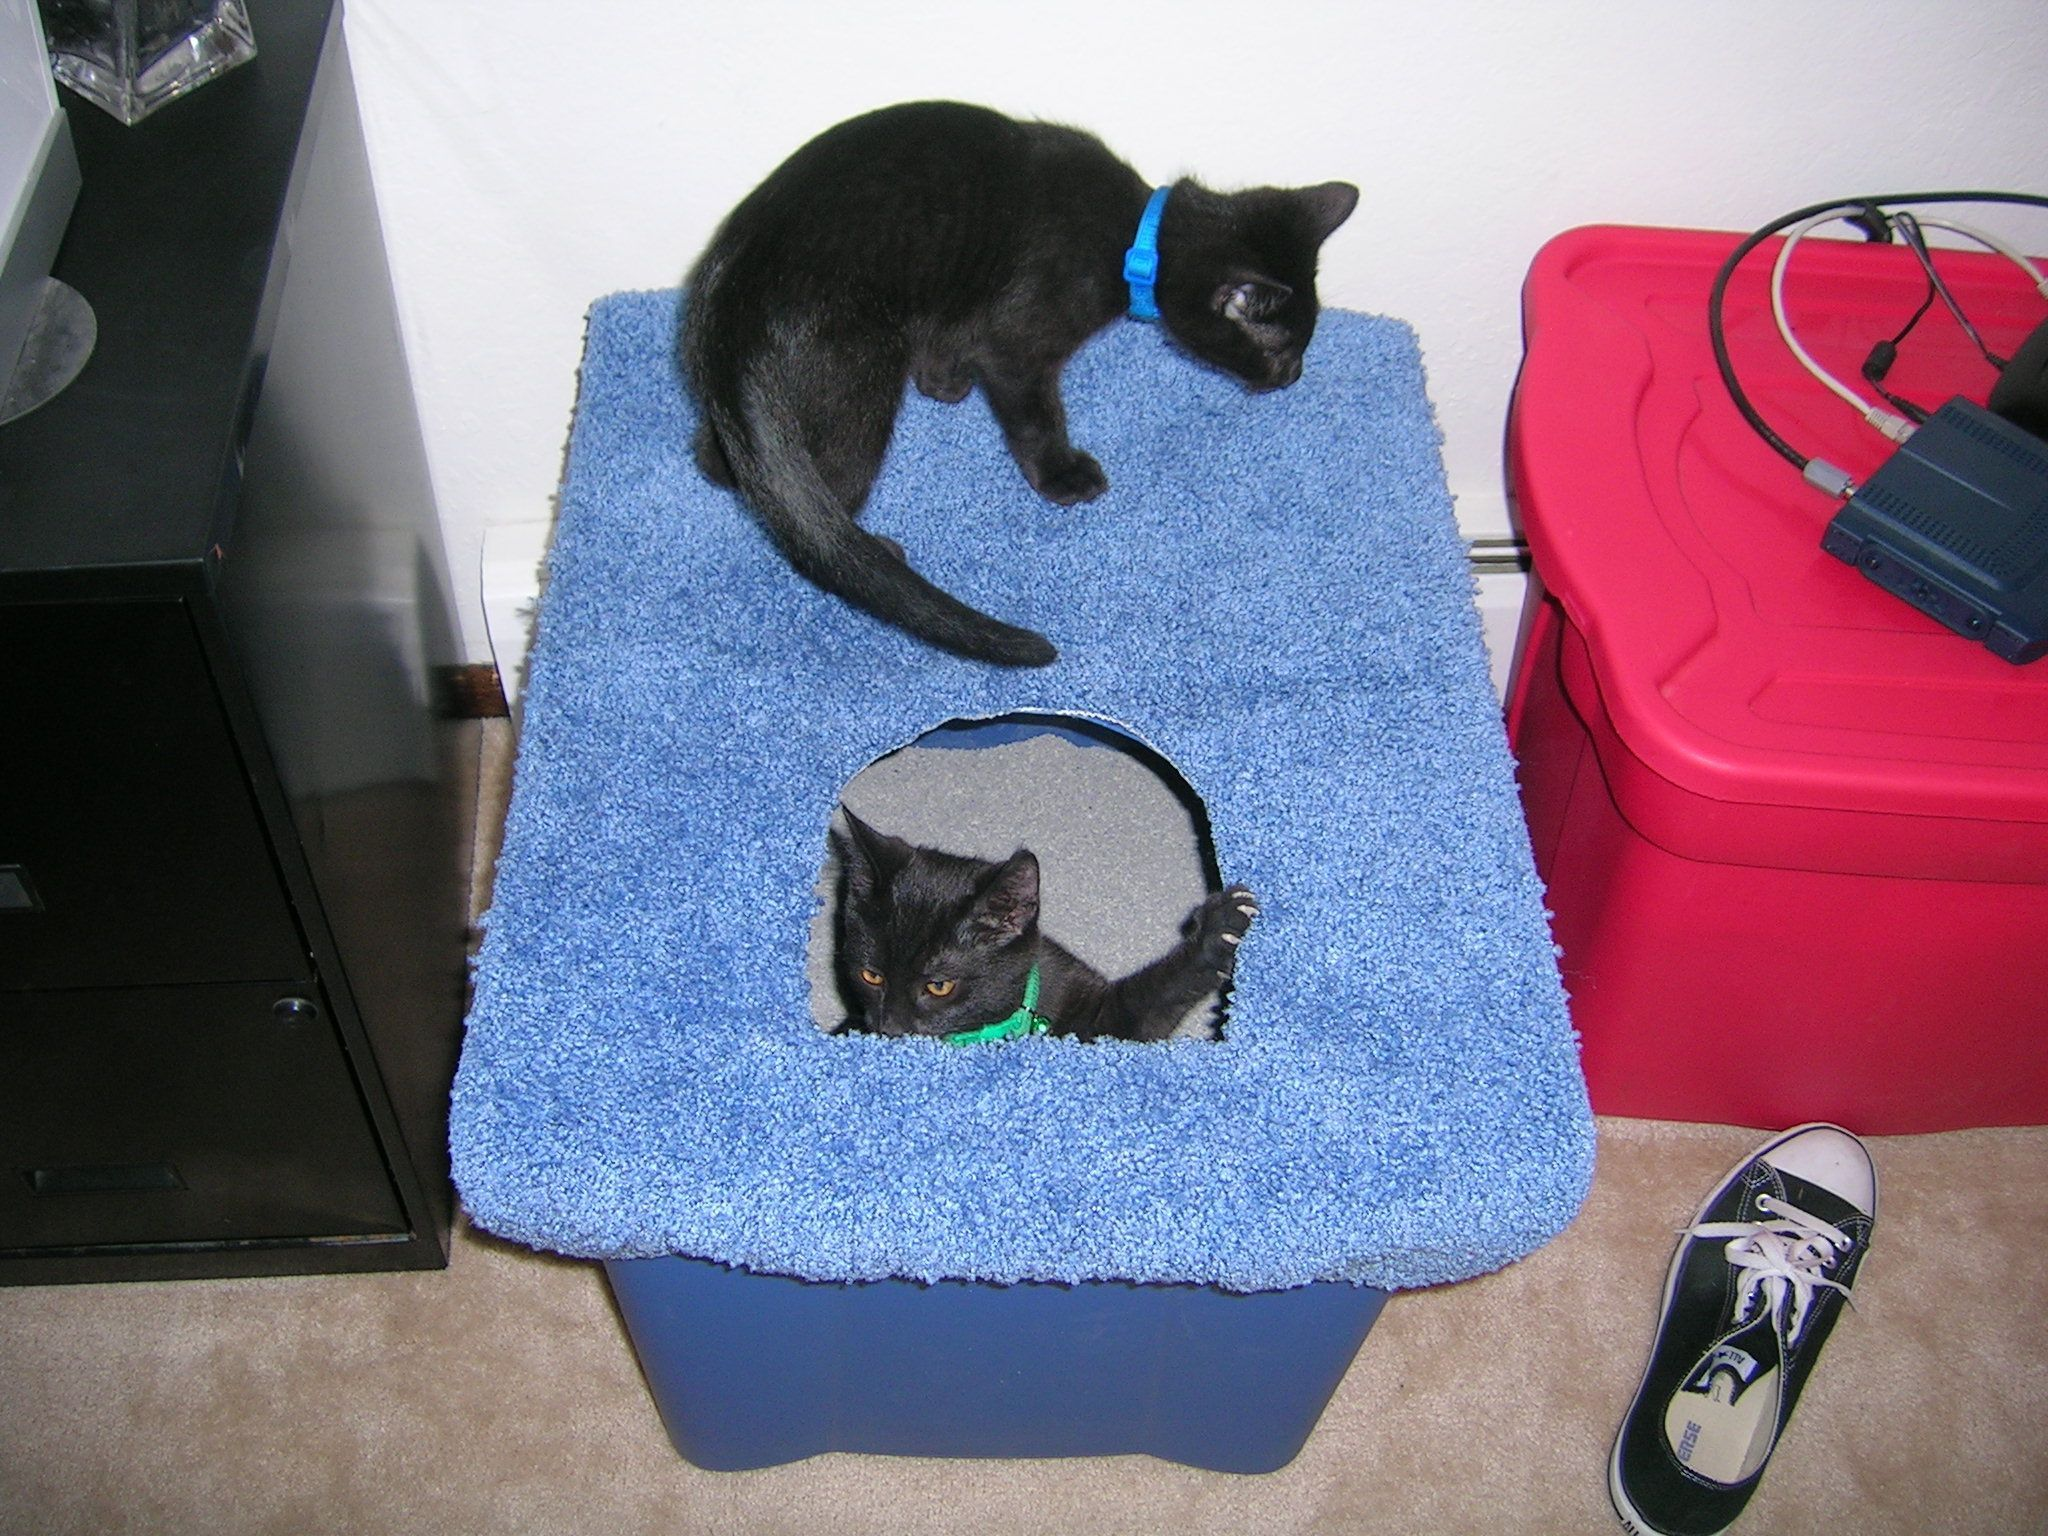 Tips For Training Your Cat Cat Litter Box Diy Cat Training Litter Box Diy Pet Care